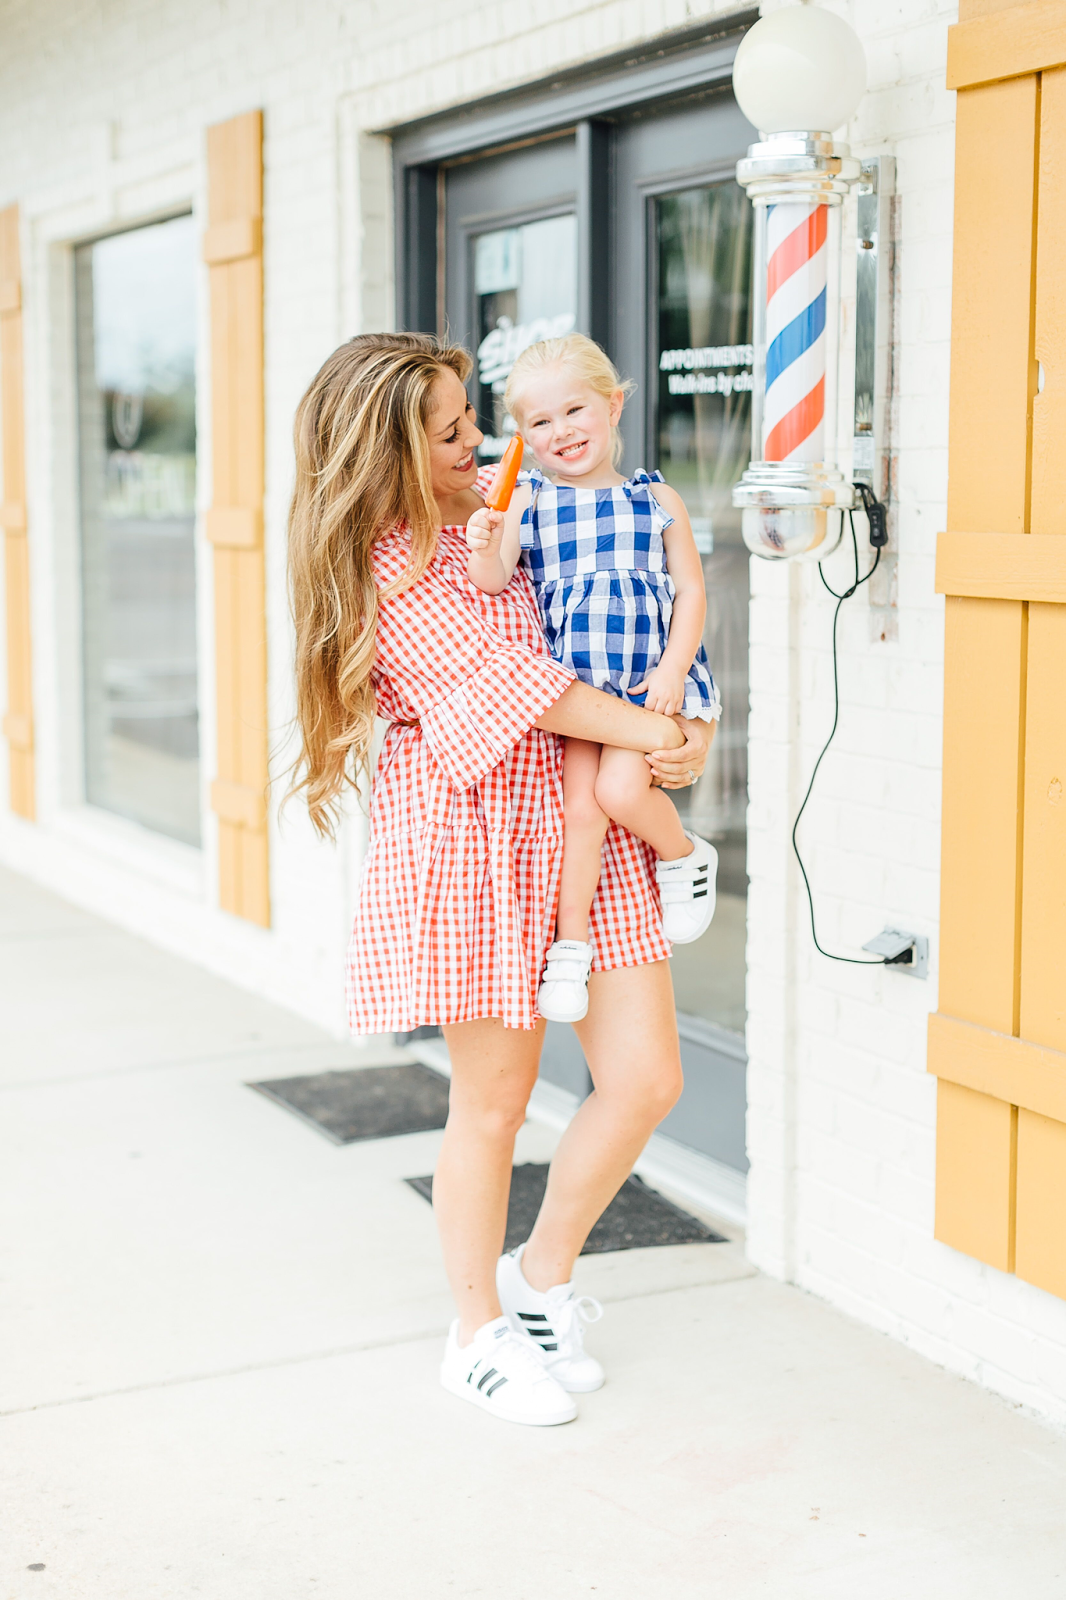 Trend Spin Linkup - Red White and Blue Outfits for Labor Day by fashion blogger Walking in Memphis in High Heels